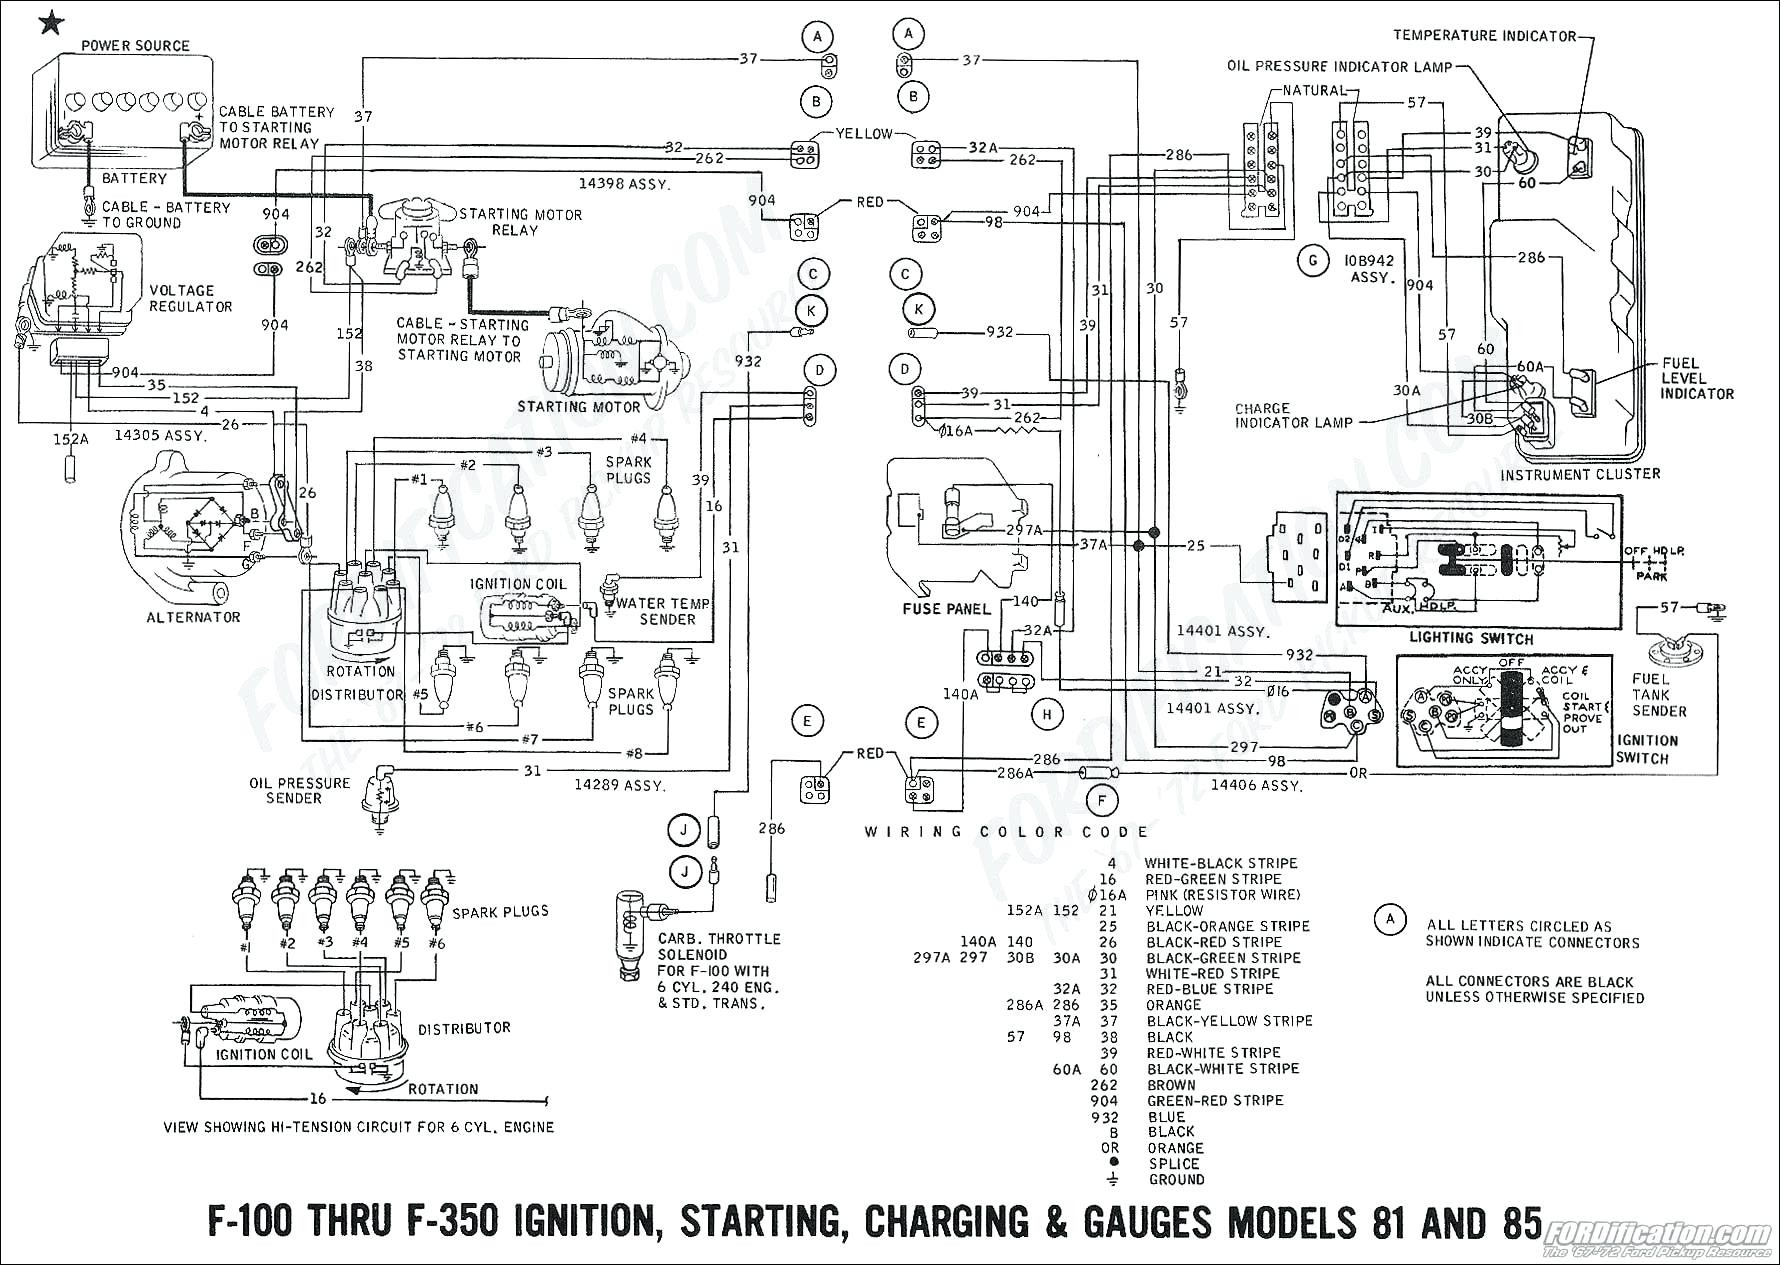 1969 Camaro Console Gauge Wiring Diagram Trusted Diagrams Ac Delco Alternator Http Wwwcamarosnet Forums Elegant Image 1967